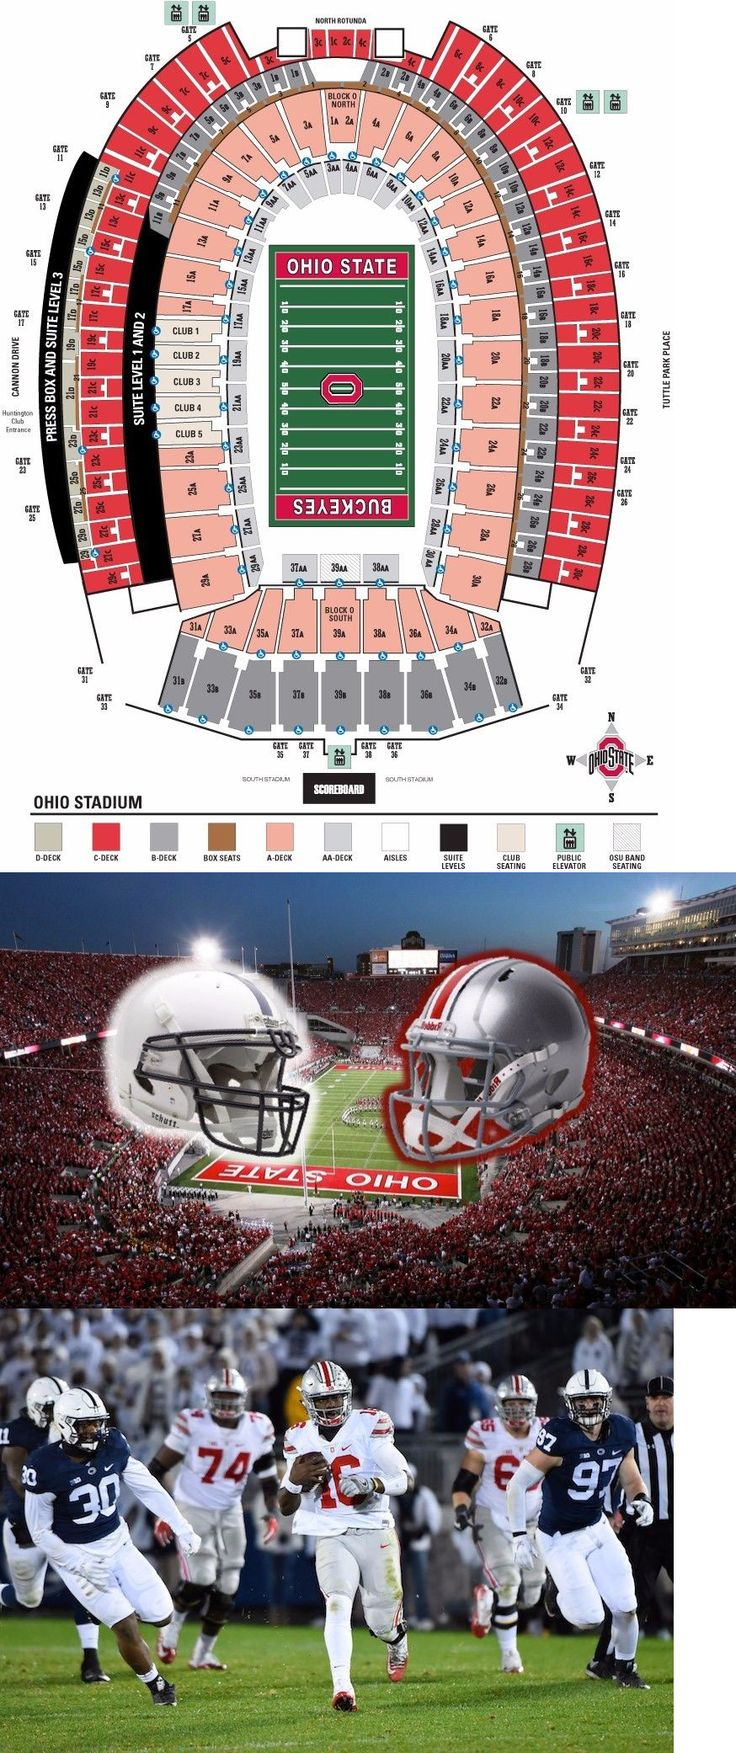 Other Football 2024: 2 Tickets Ohio State Vs Penn State 10 28 Section 5B Row 6!!! -> BUY IT NOW ONLY: $500 on eBay!